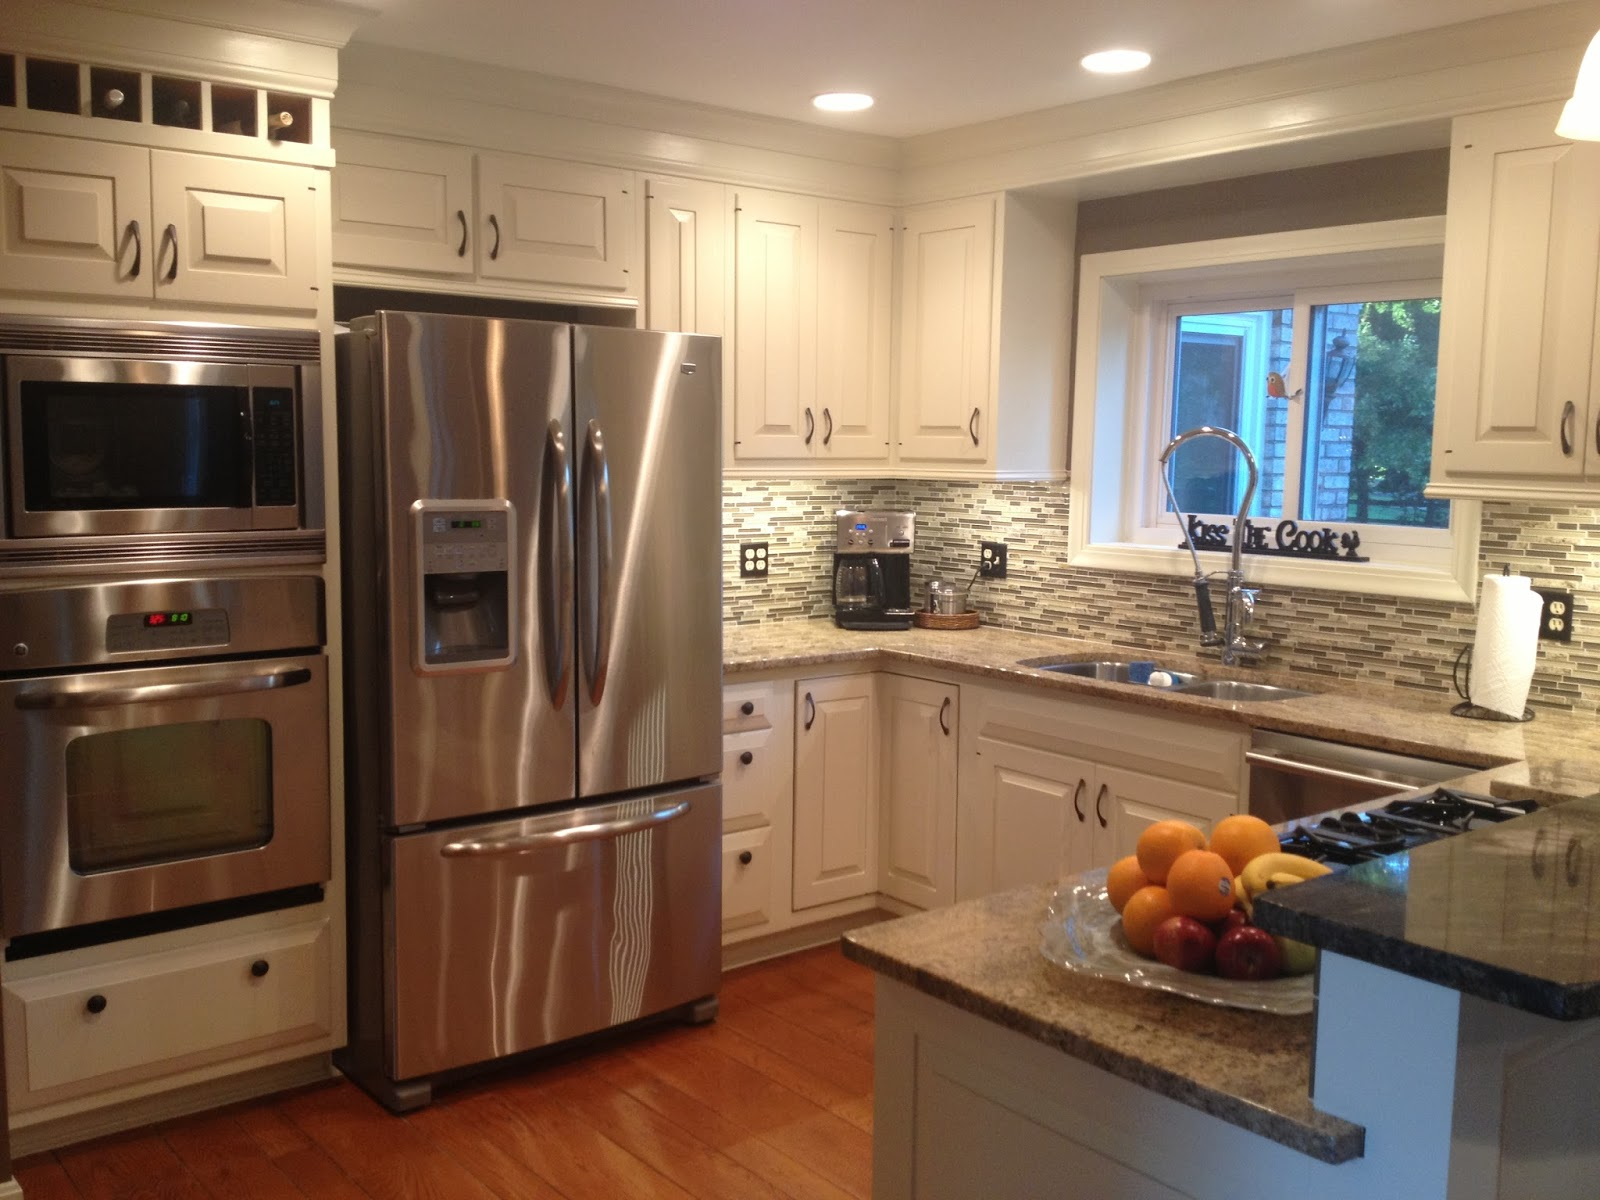 Four seasons style the new kitchen remodel on a budget for Small kitchen remodels on a budget